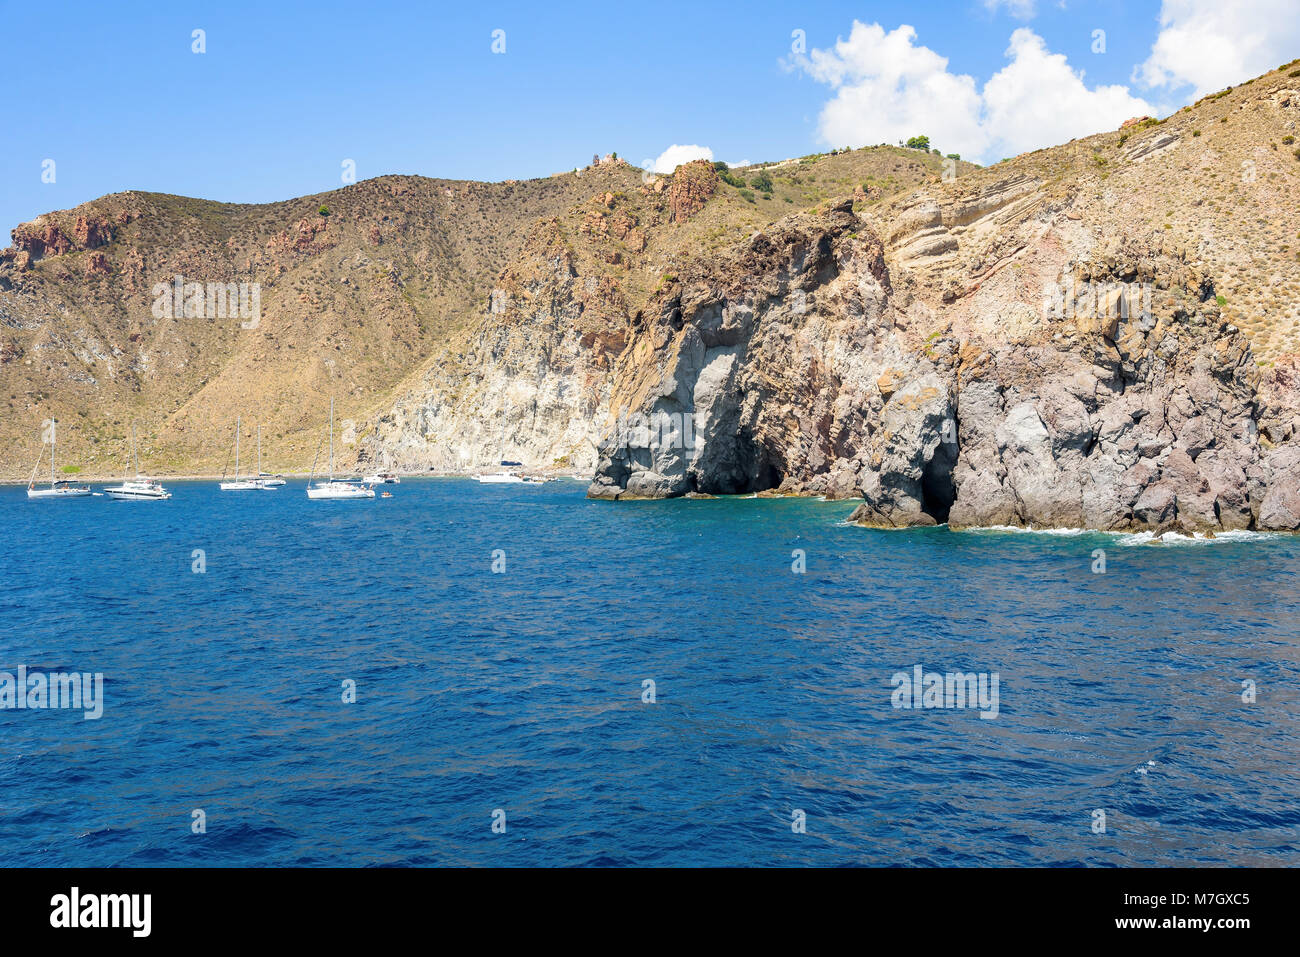 Yachts at the rocky coast of Lipari Island, Aeolian Islands, Italy Stock Photo